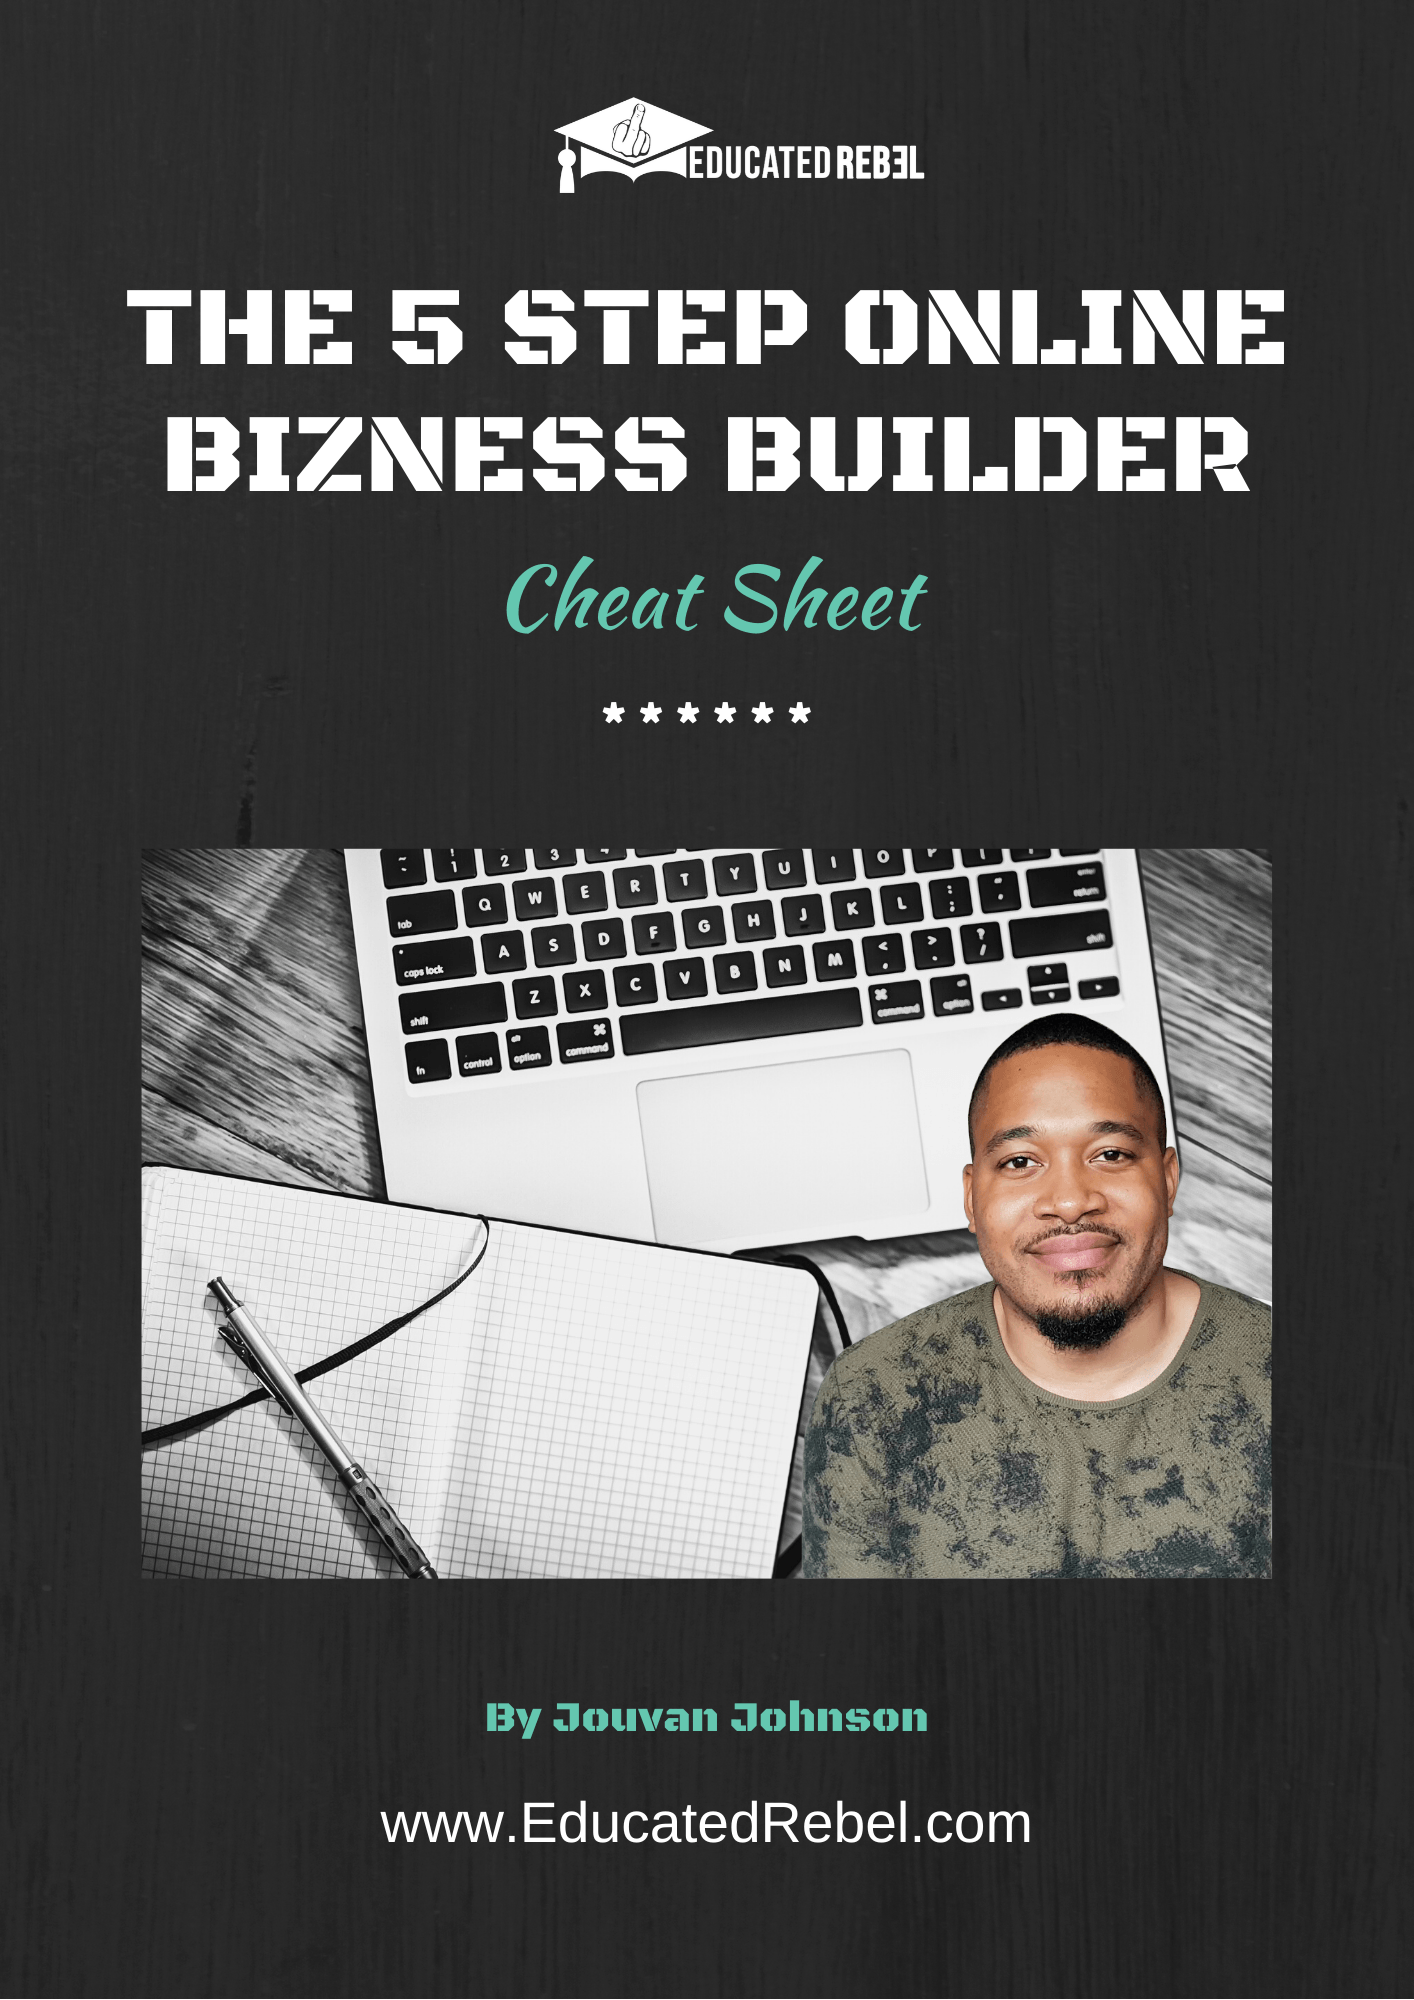 The 5 Step Online Bizness Builder Cheat Sheet cover image